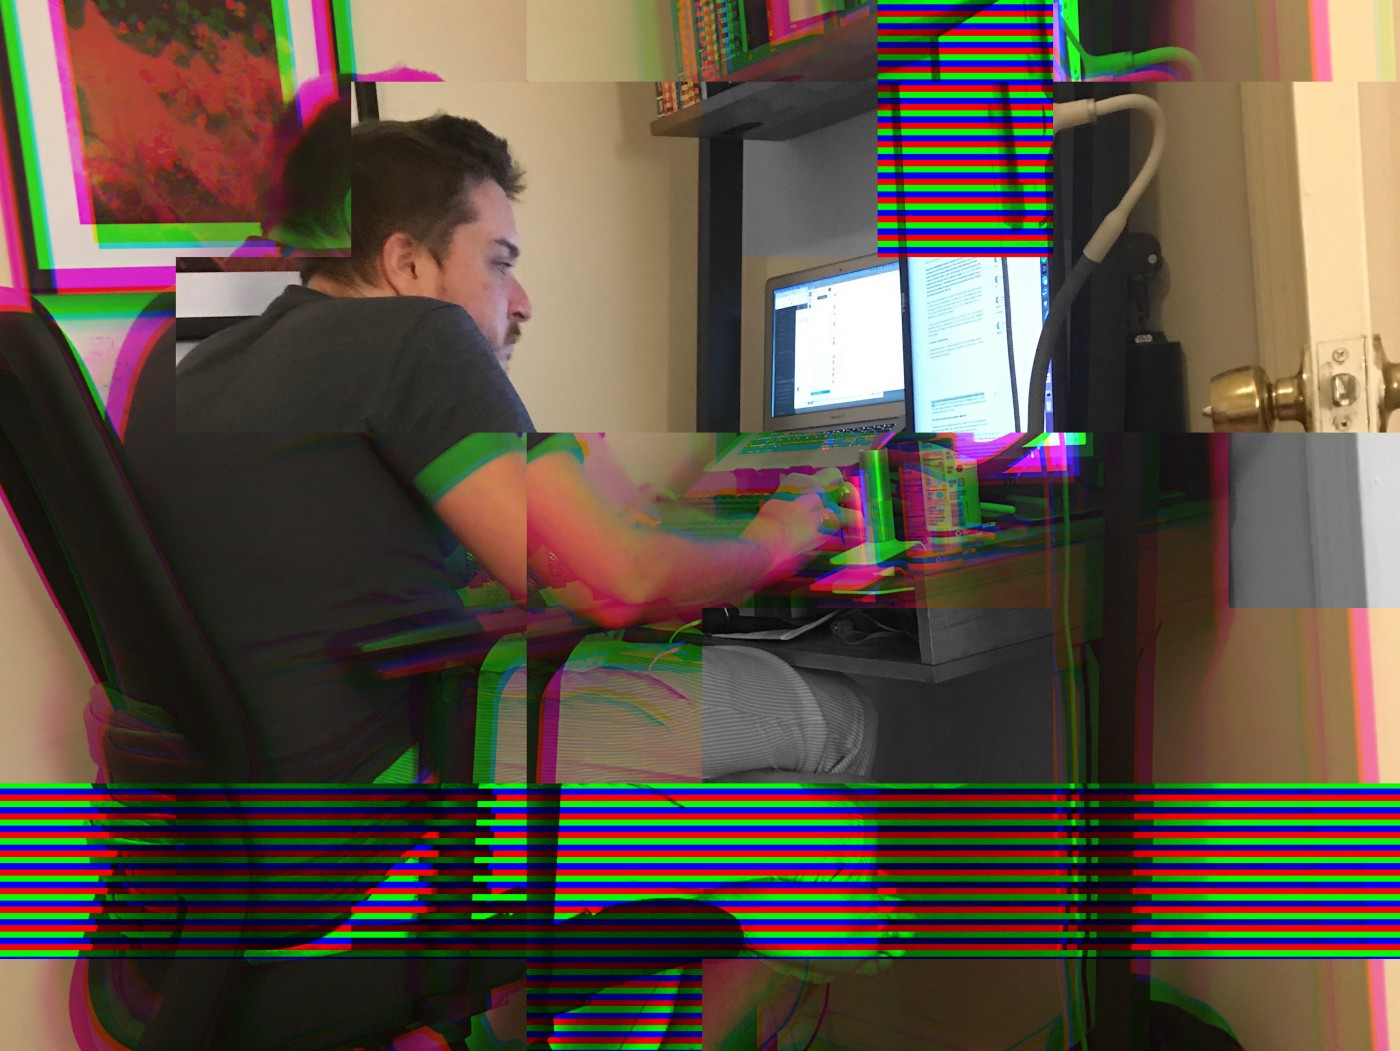 Damon Beres, the author, working on his computer at his home desk.